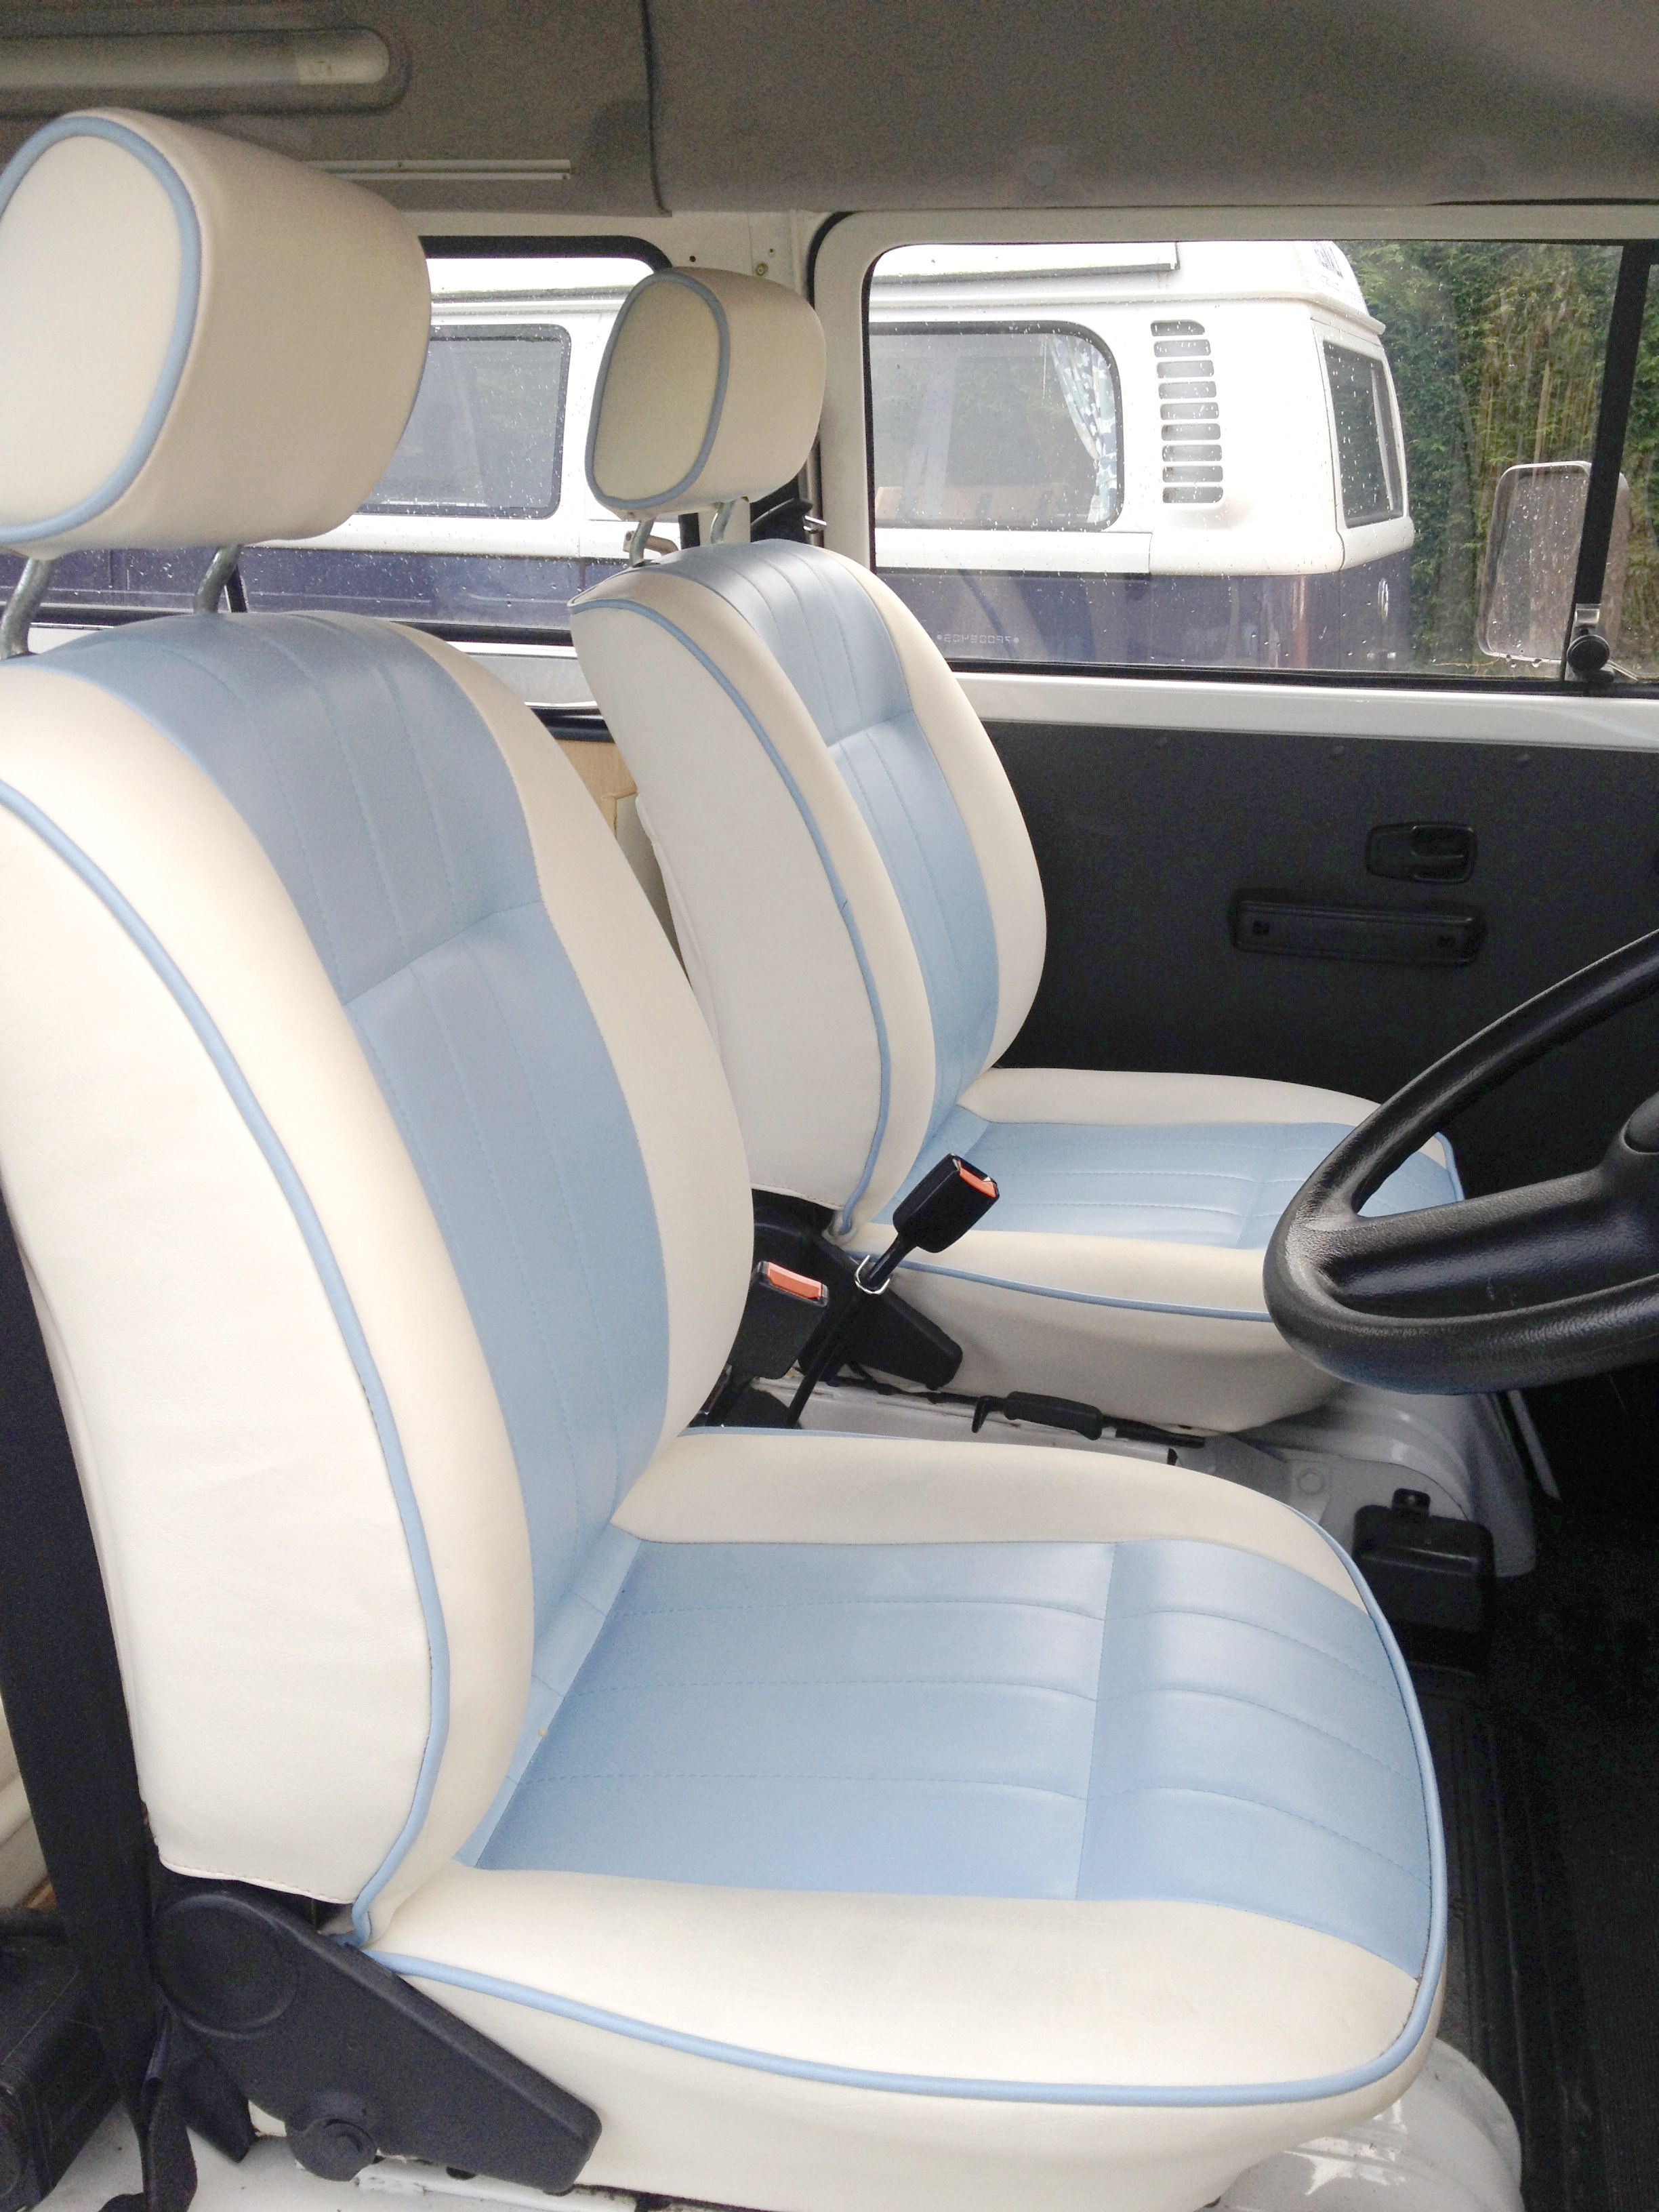 Vw Camper Hire Have Given Bertie Even More Love For 2014 With Brand New Seating And Curtains In Addition To The Interior He Has Also Had A New Nose Fitted So T